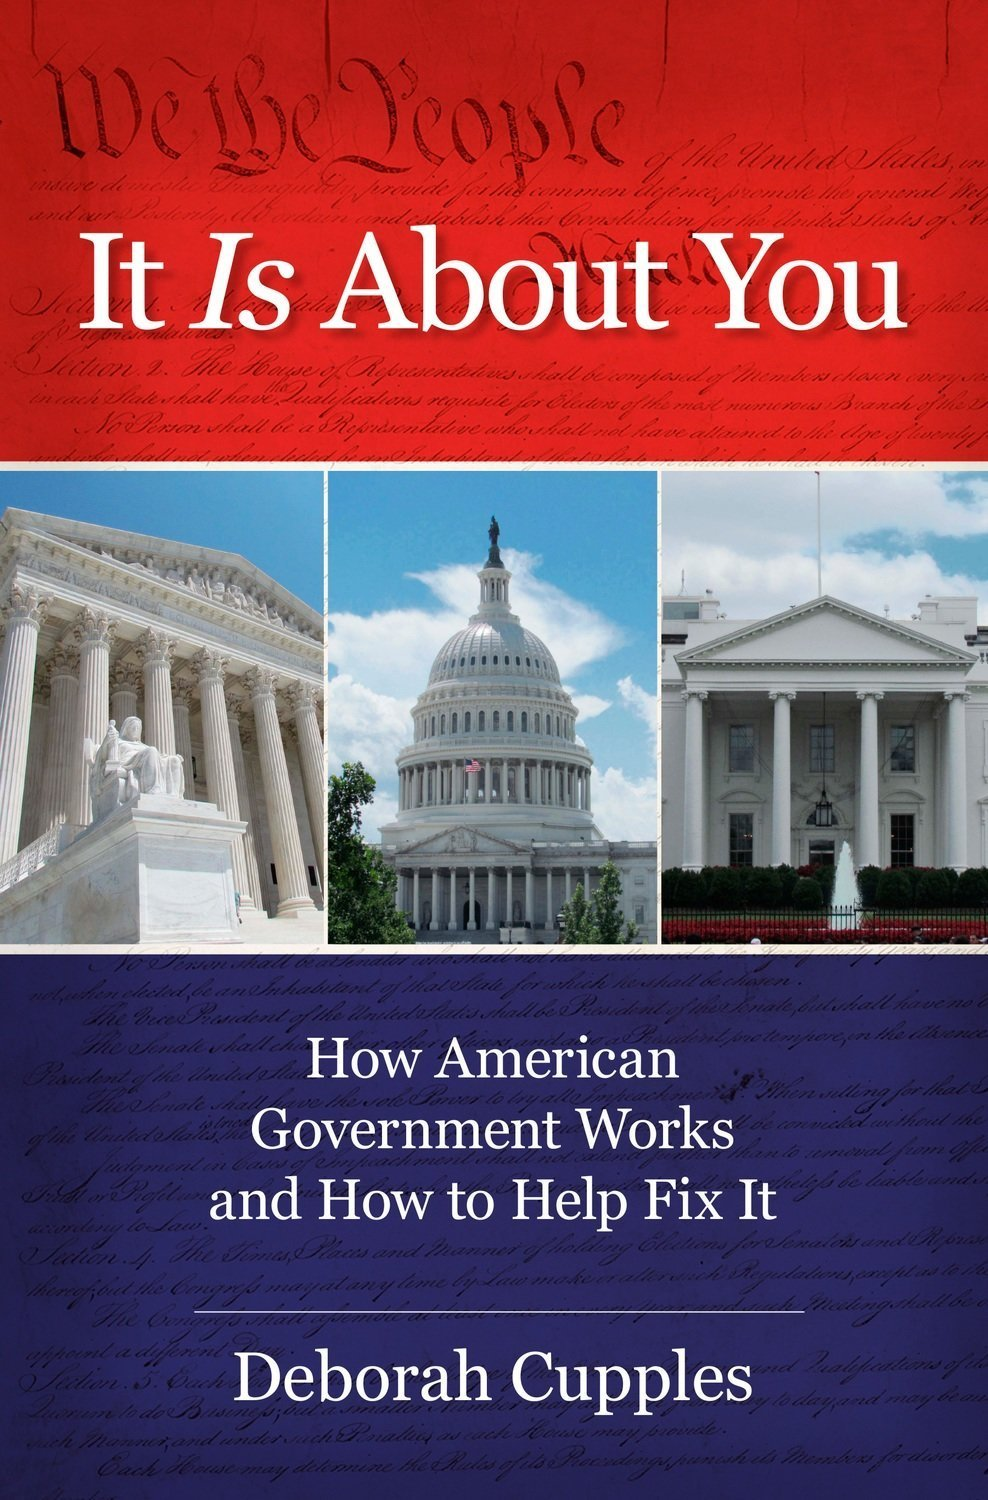 It Is About You: How American Government Works and How to Help Fix It - Non-Fiction